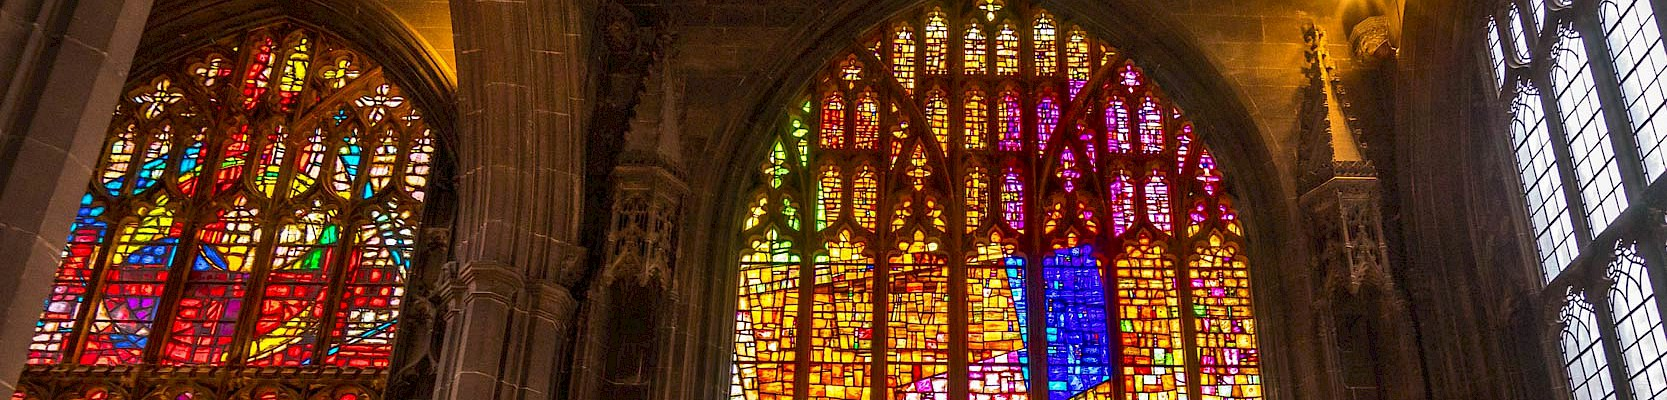 Cathedral Stained Glass Windows -